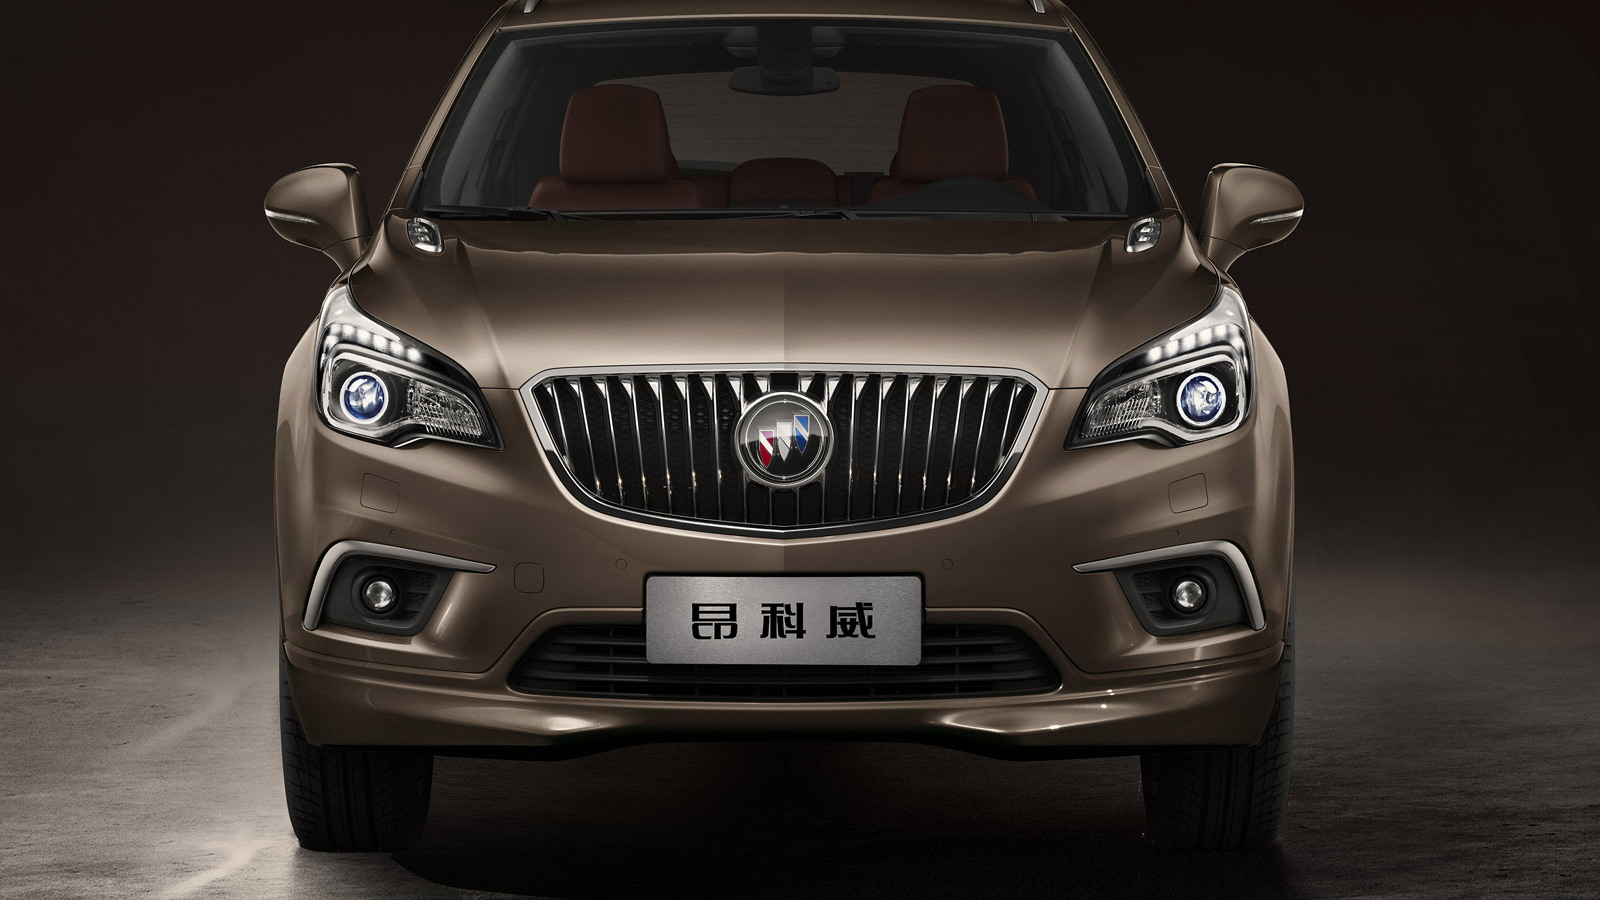 2015 Buick Envision (Chinese spec)